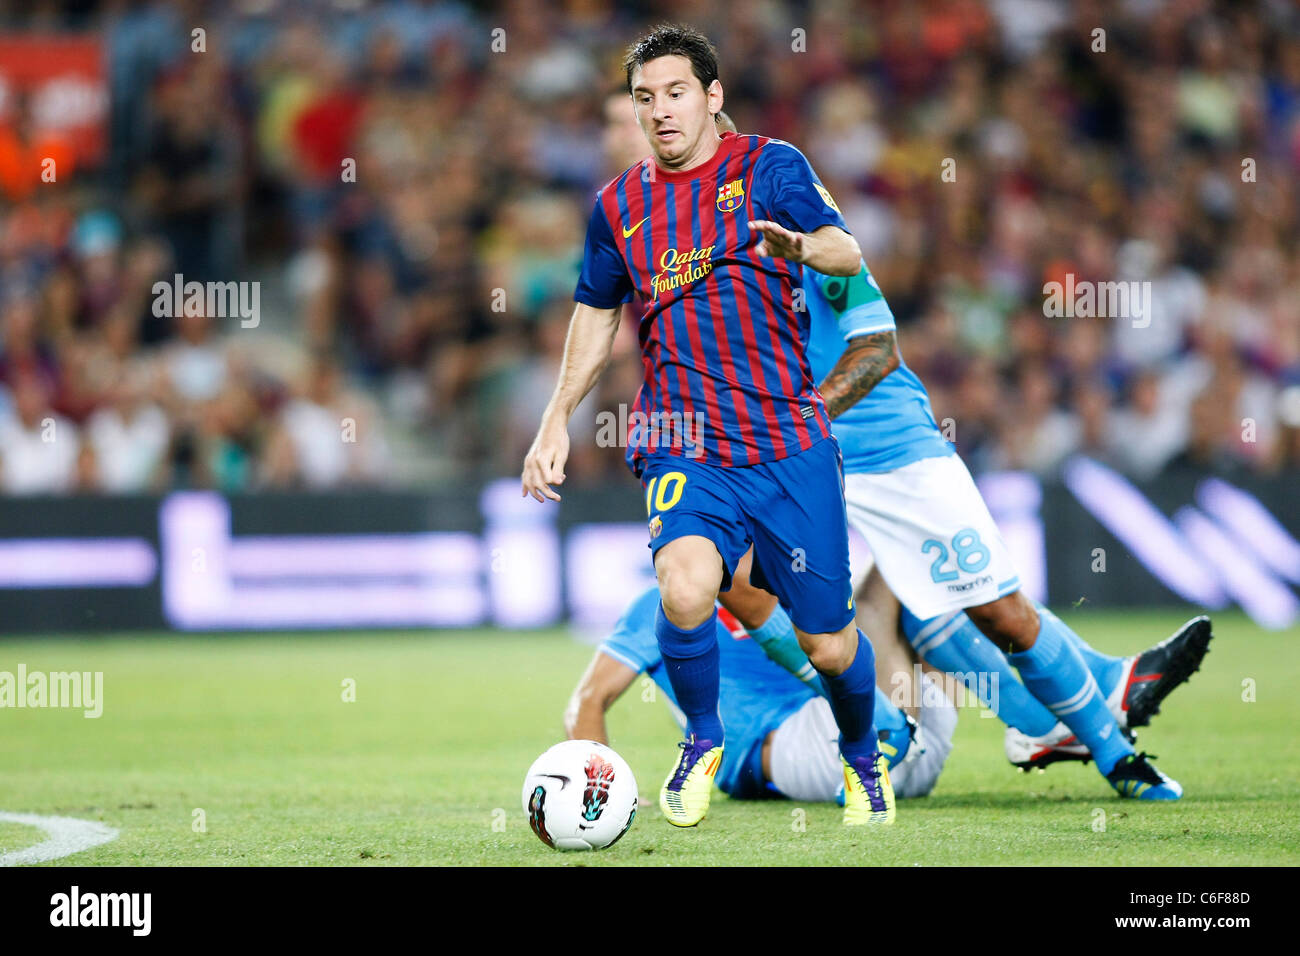 Lionel Messi (Barcelona) playing for the Trofeo Joan Gamper match between FC Barcelona 5-0 Napoli. - Stock Image